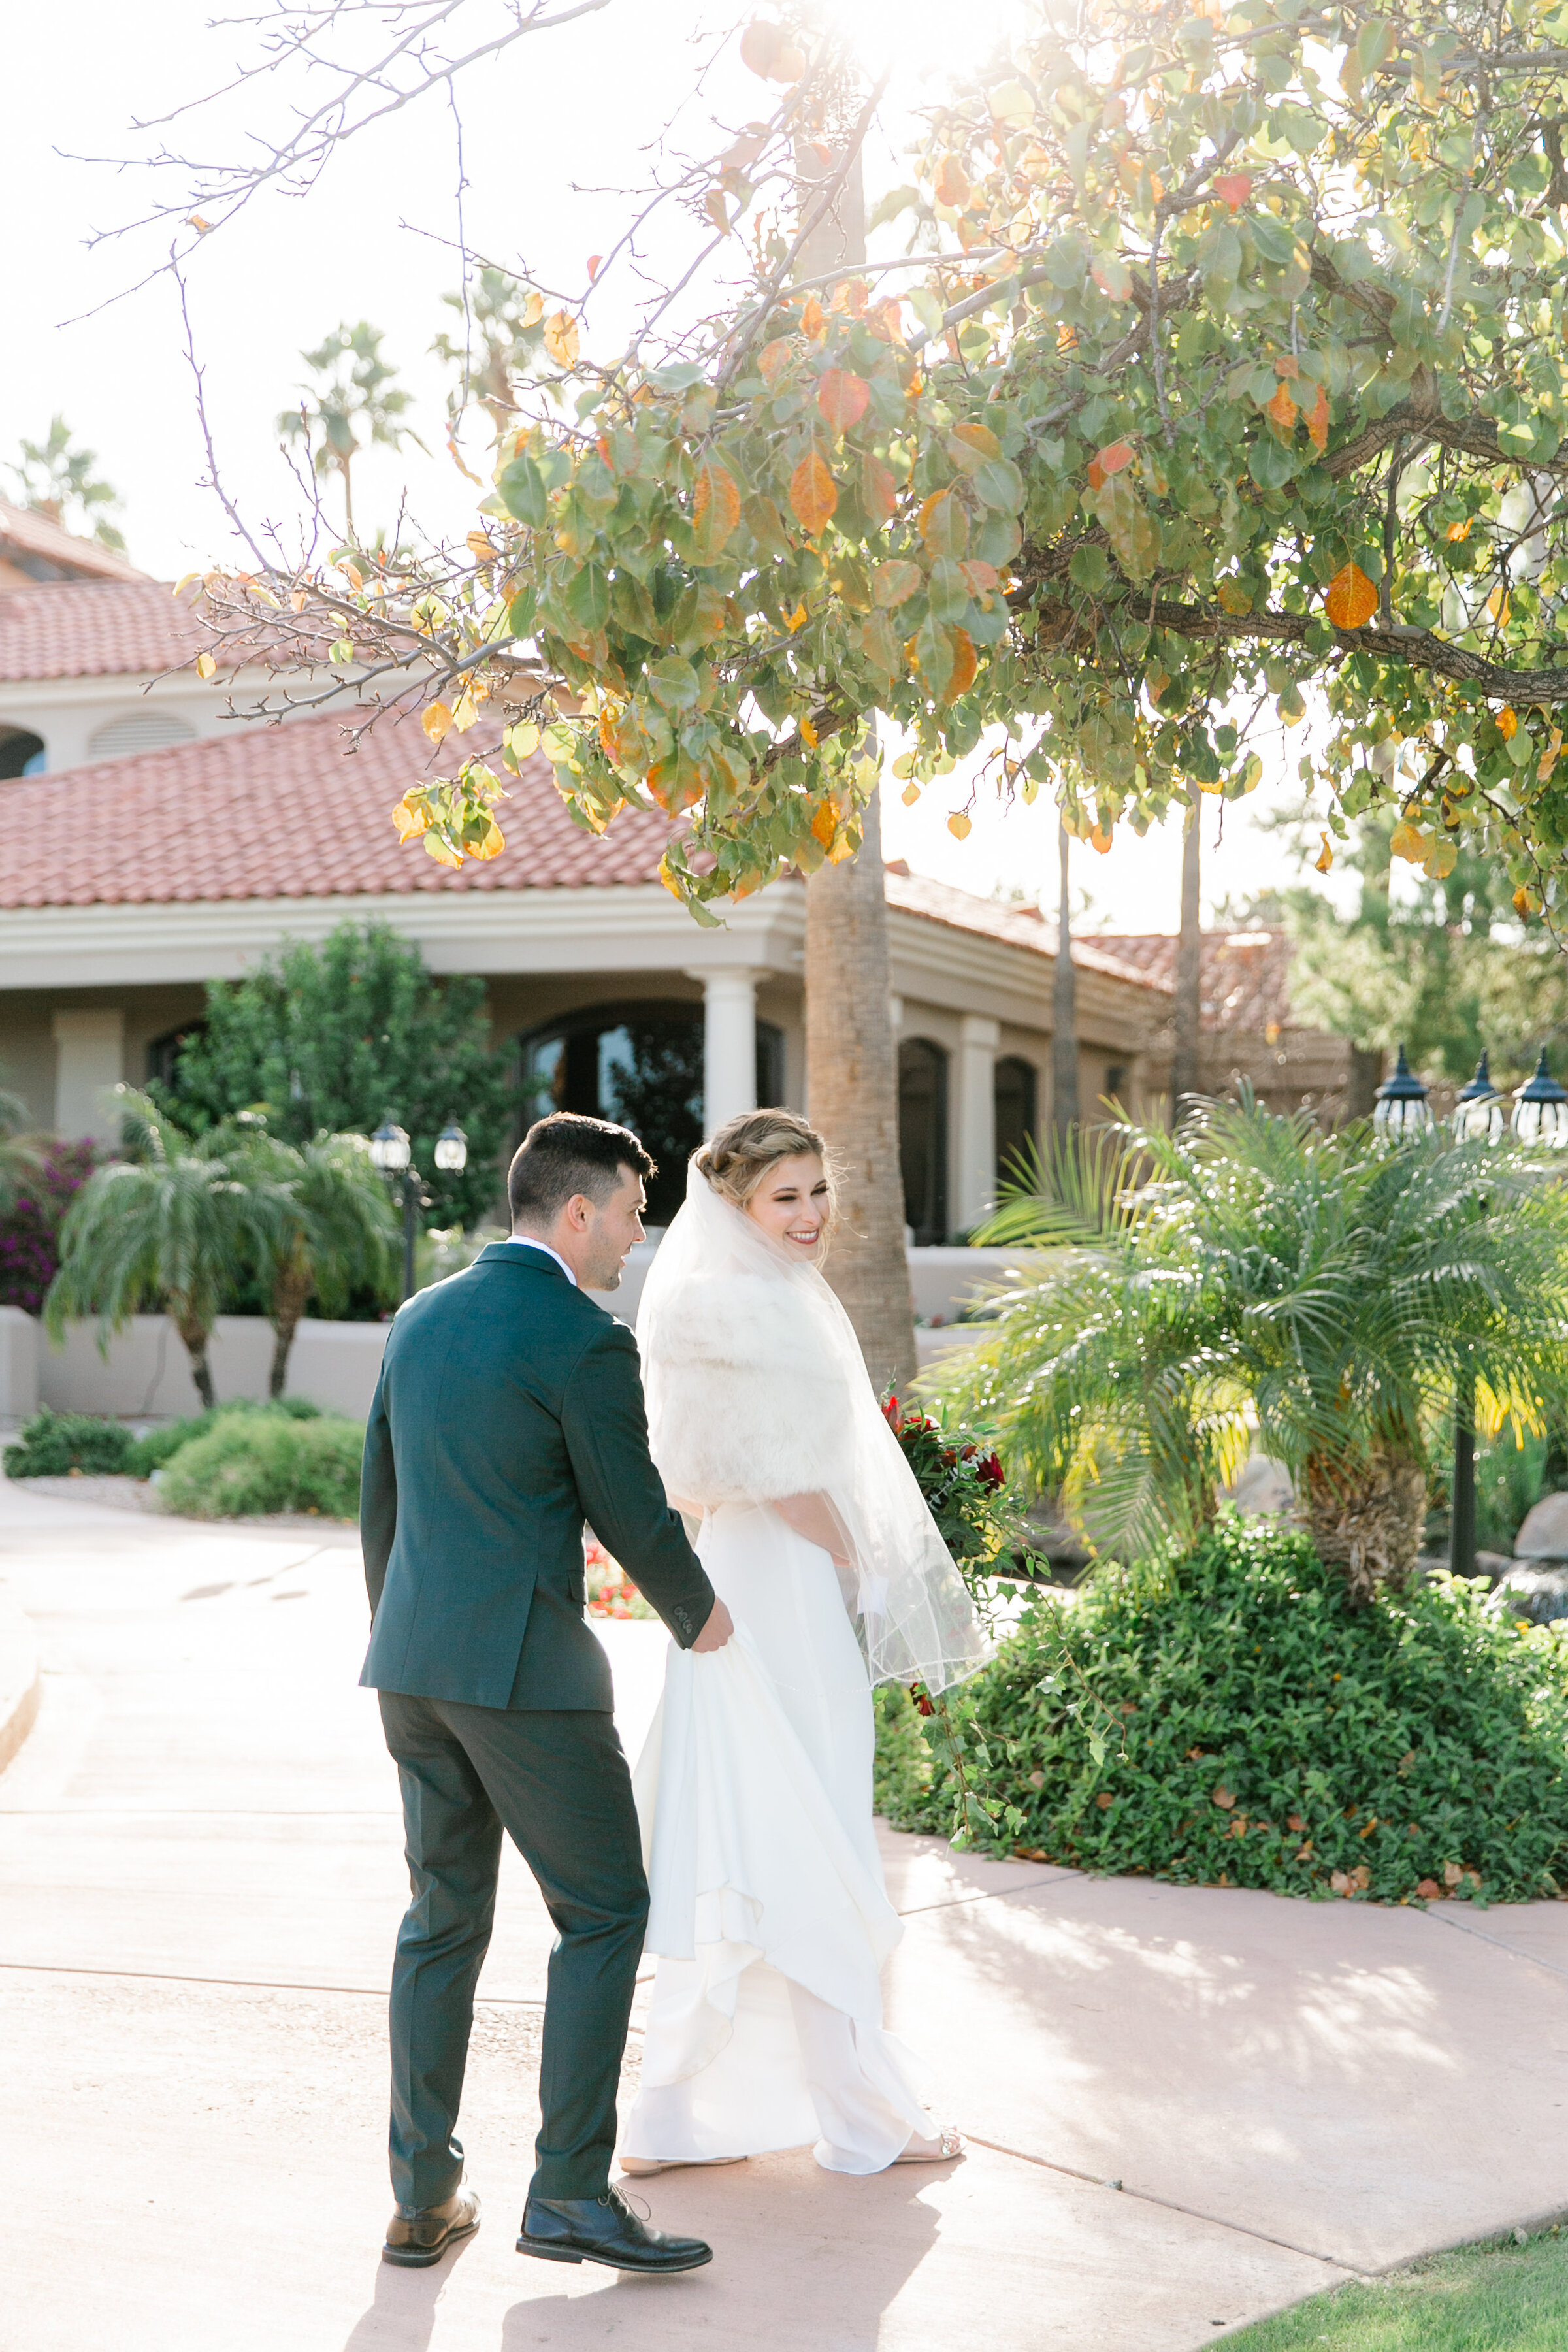 Karlie Colleen Photography - Gilbert Arizona Wedding - Val Vista Lakes - Brynne & Josh-436